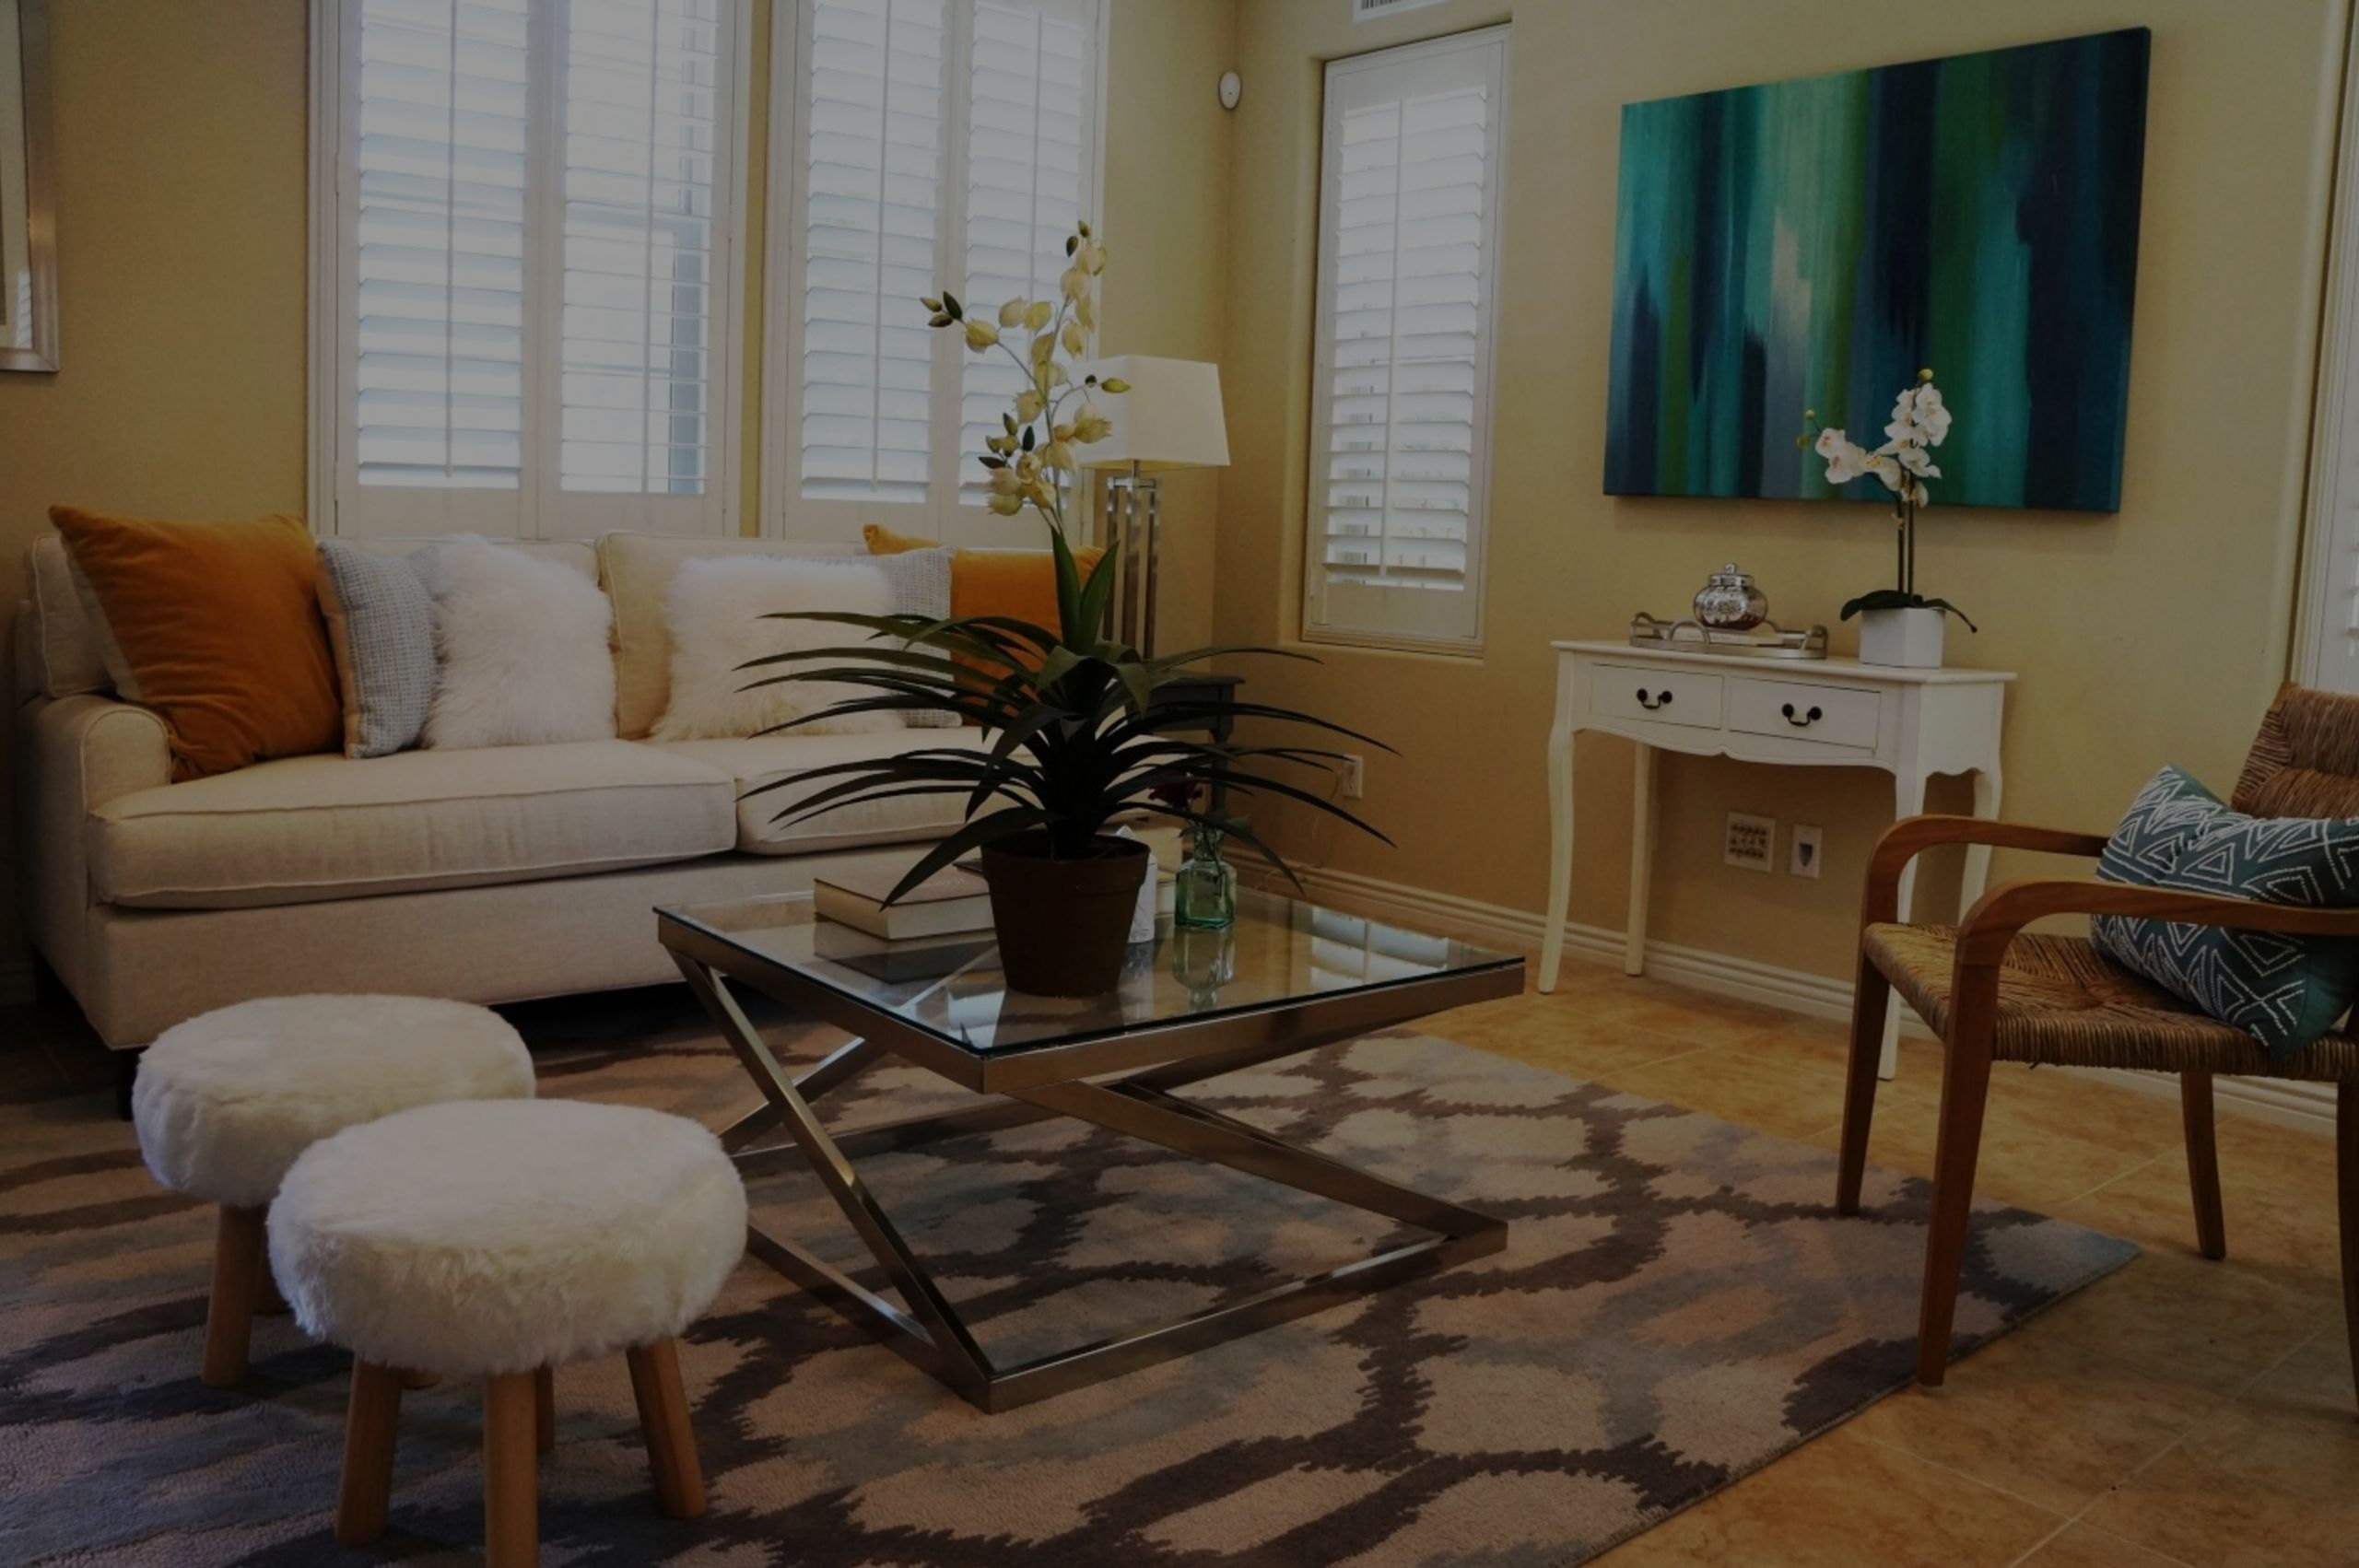 Staging A Home To Sell Quickly And For Top Dollar